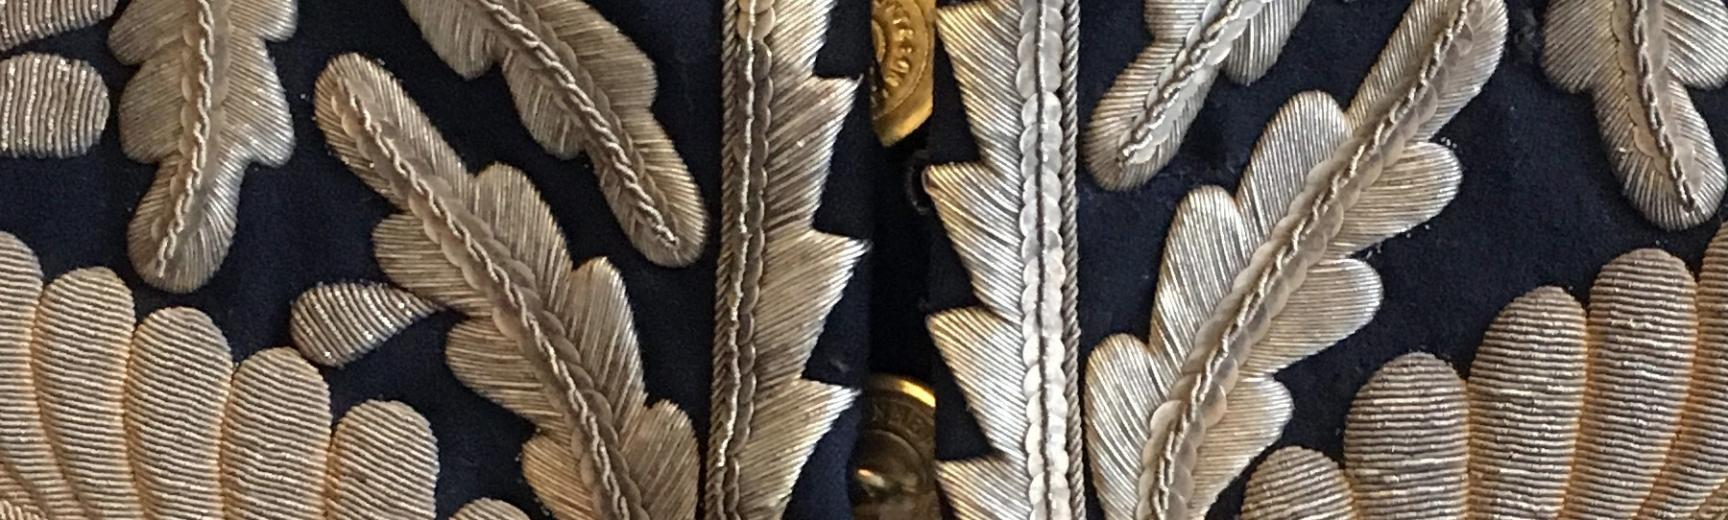 Goldwork embroidery detail